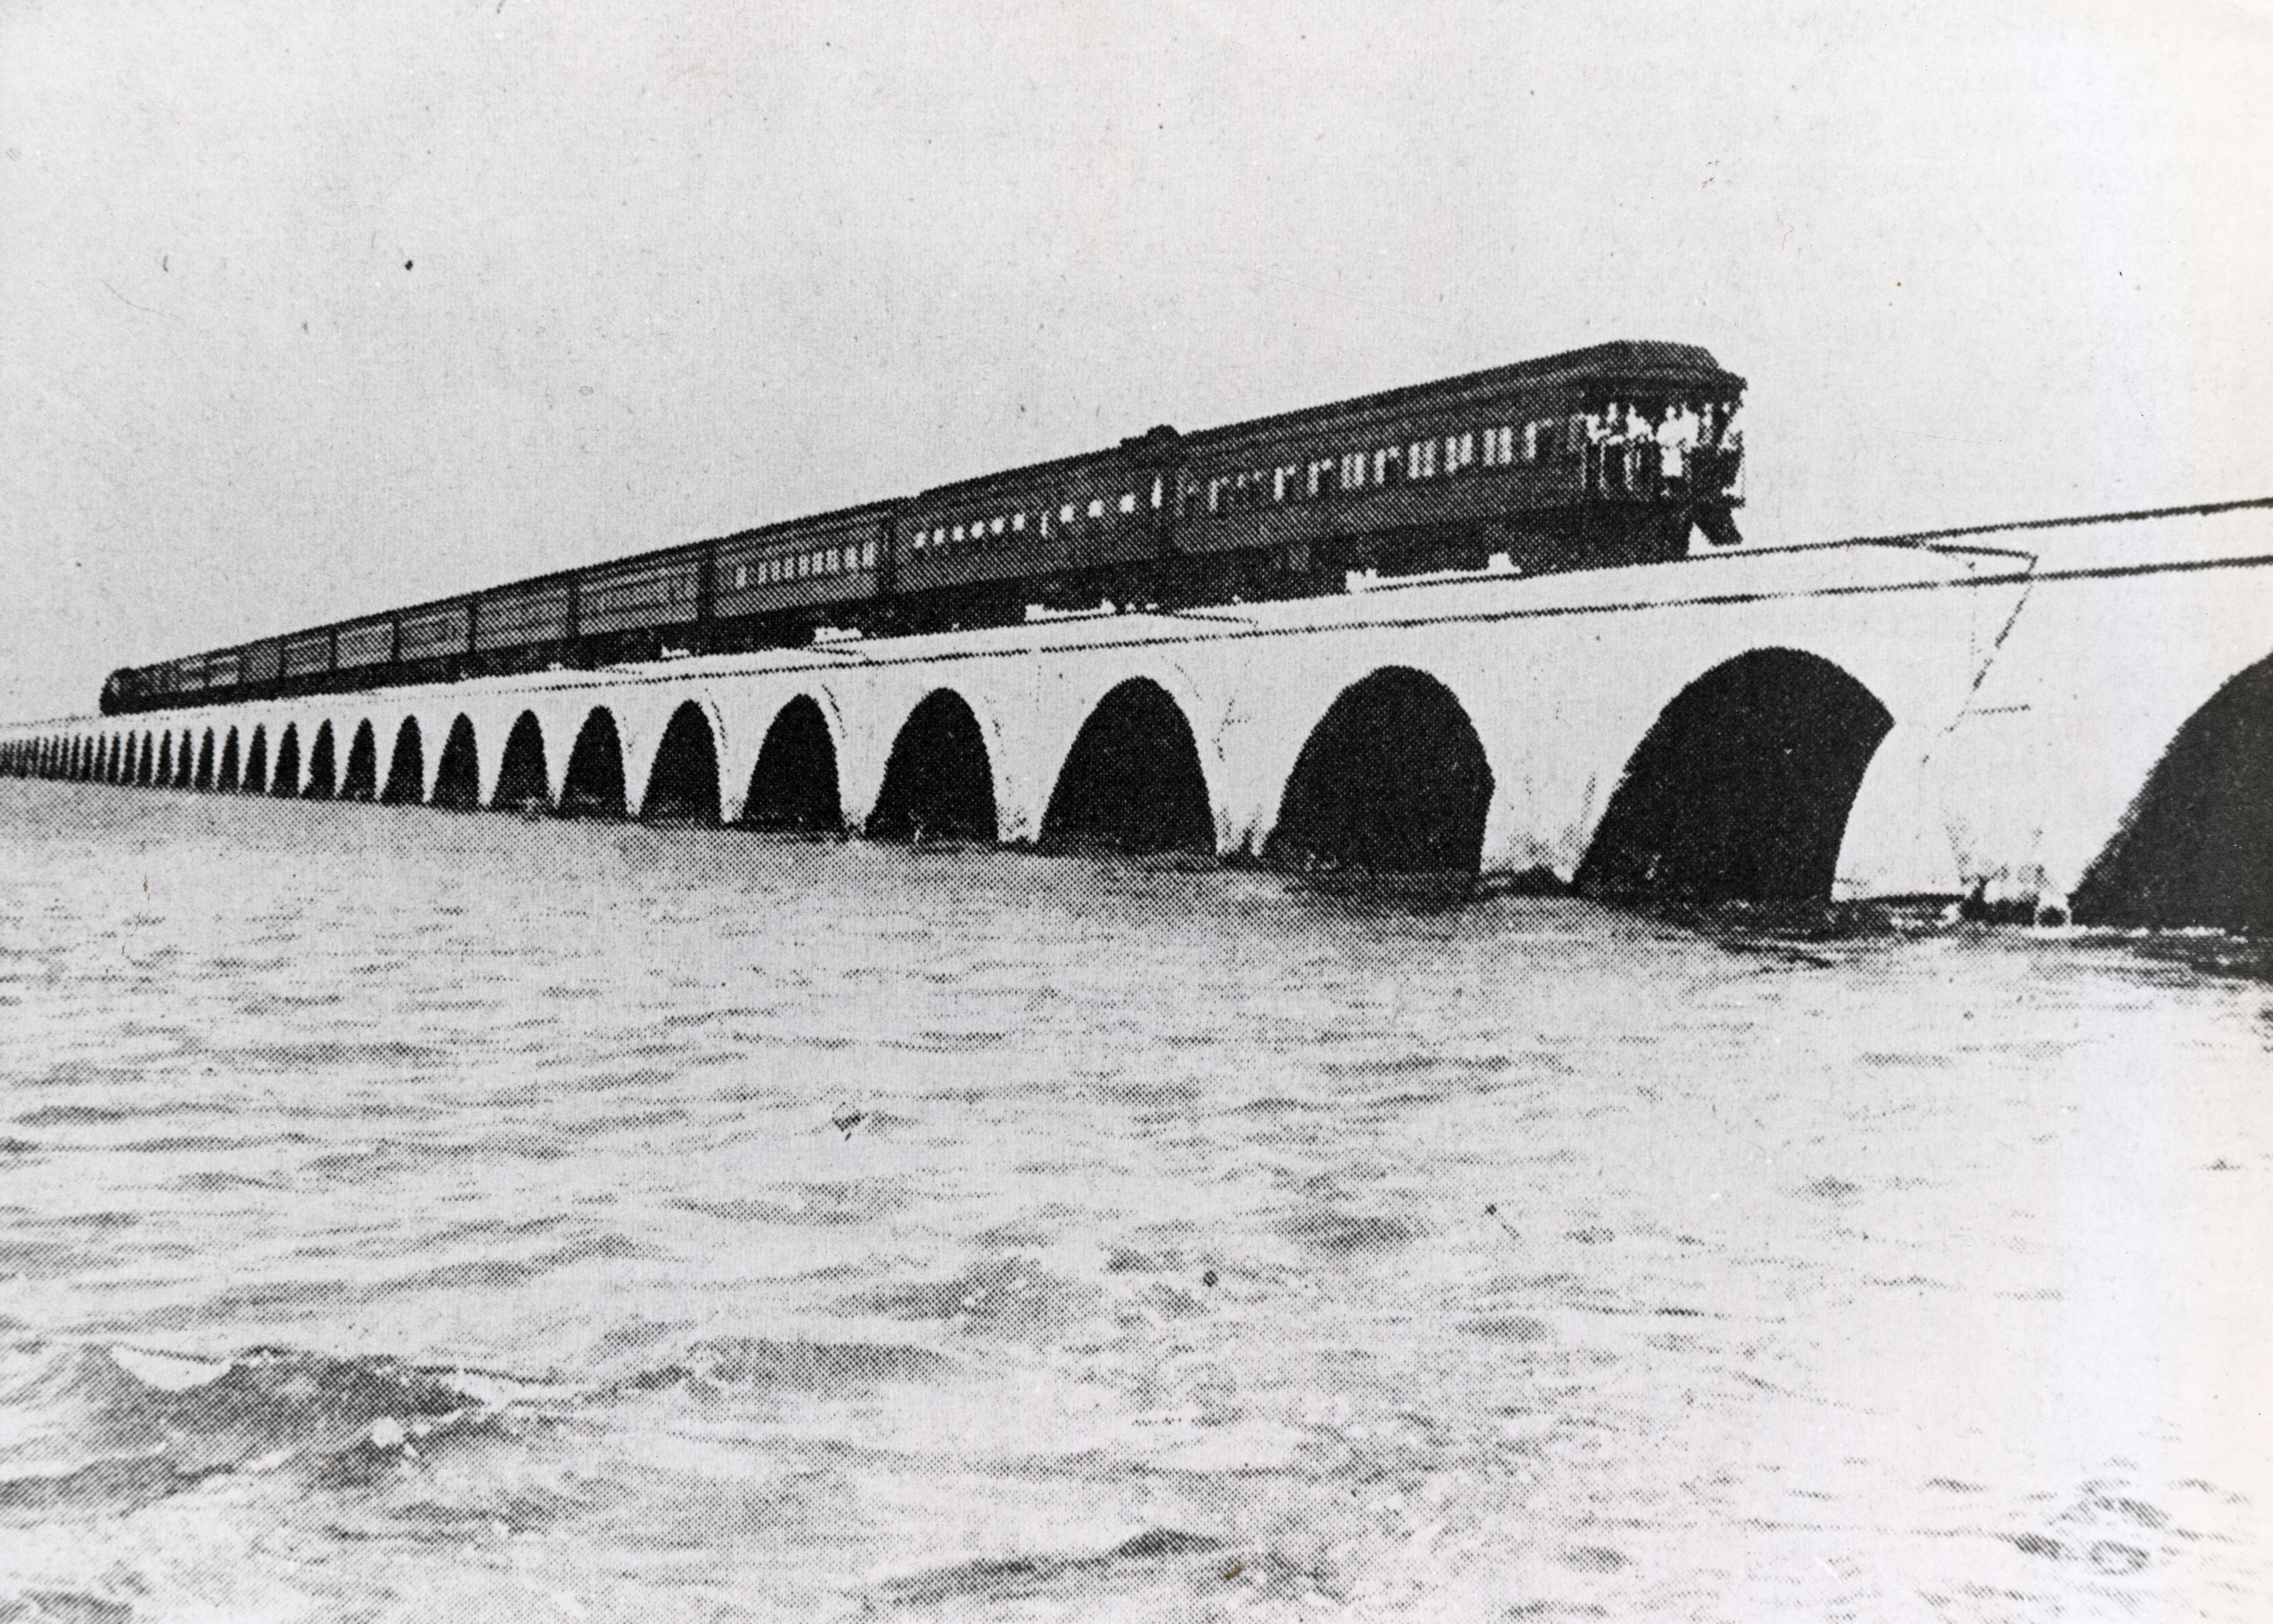 Florida East Coast Railway, Key West Extension. Train on Seven Mile Bridge heading to Key West. Photo from the Monroe County Library Collection.